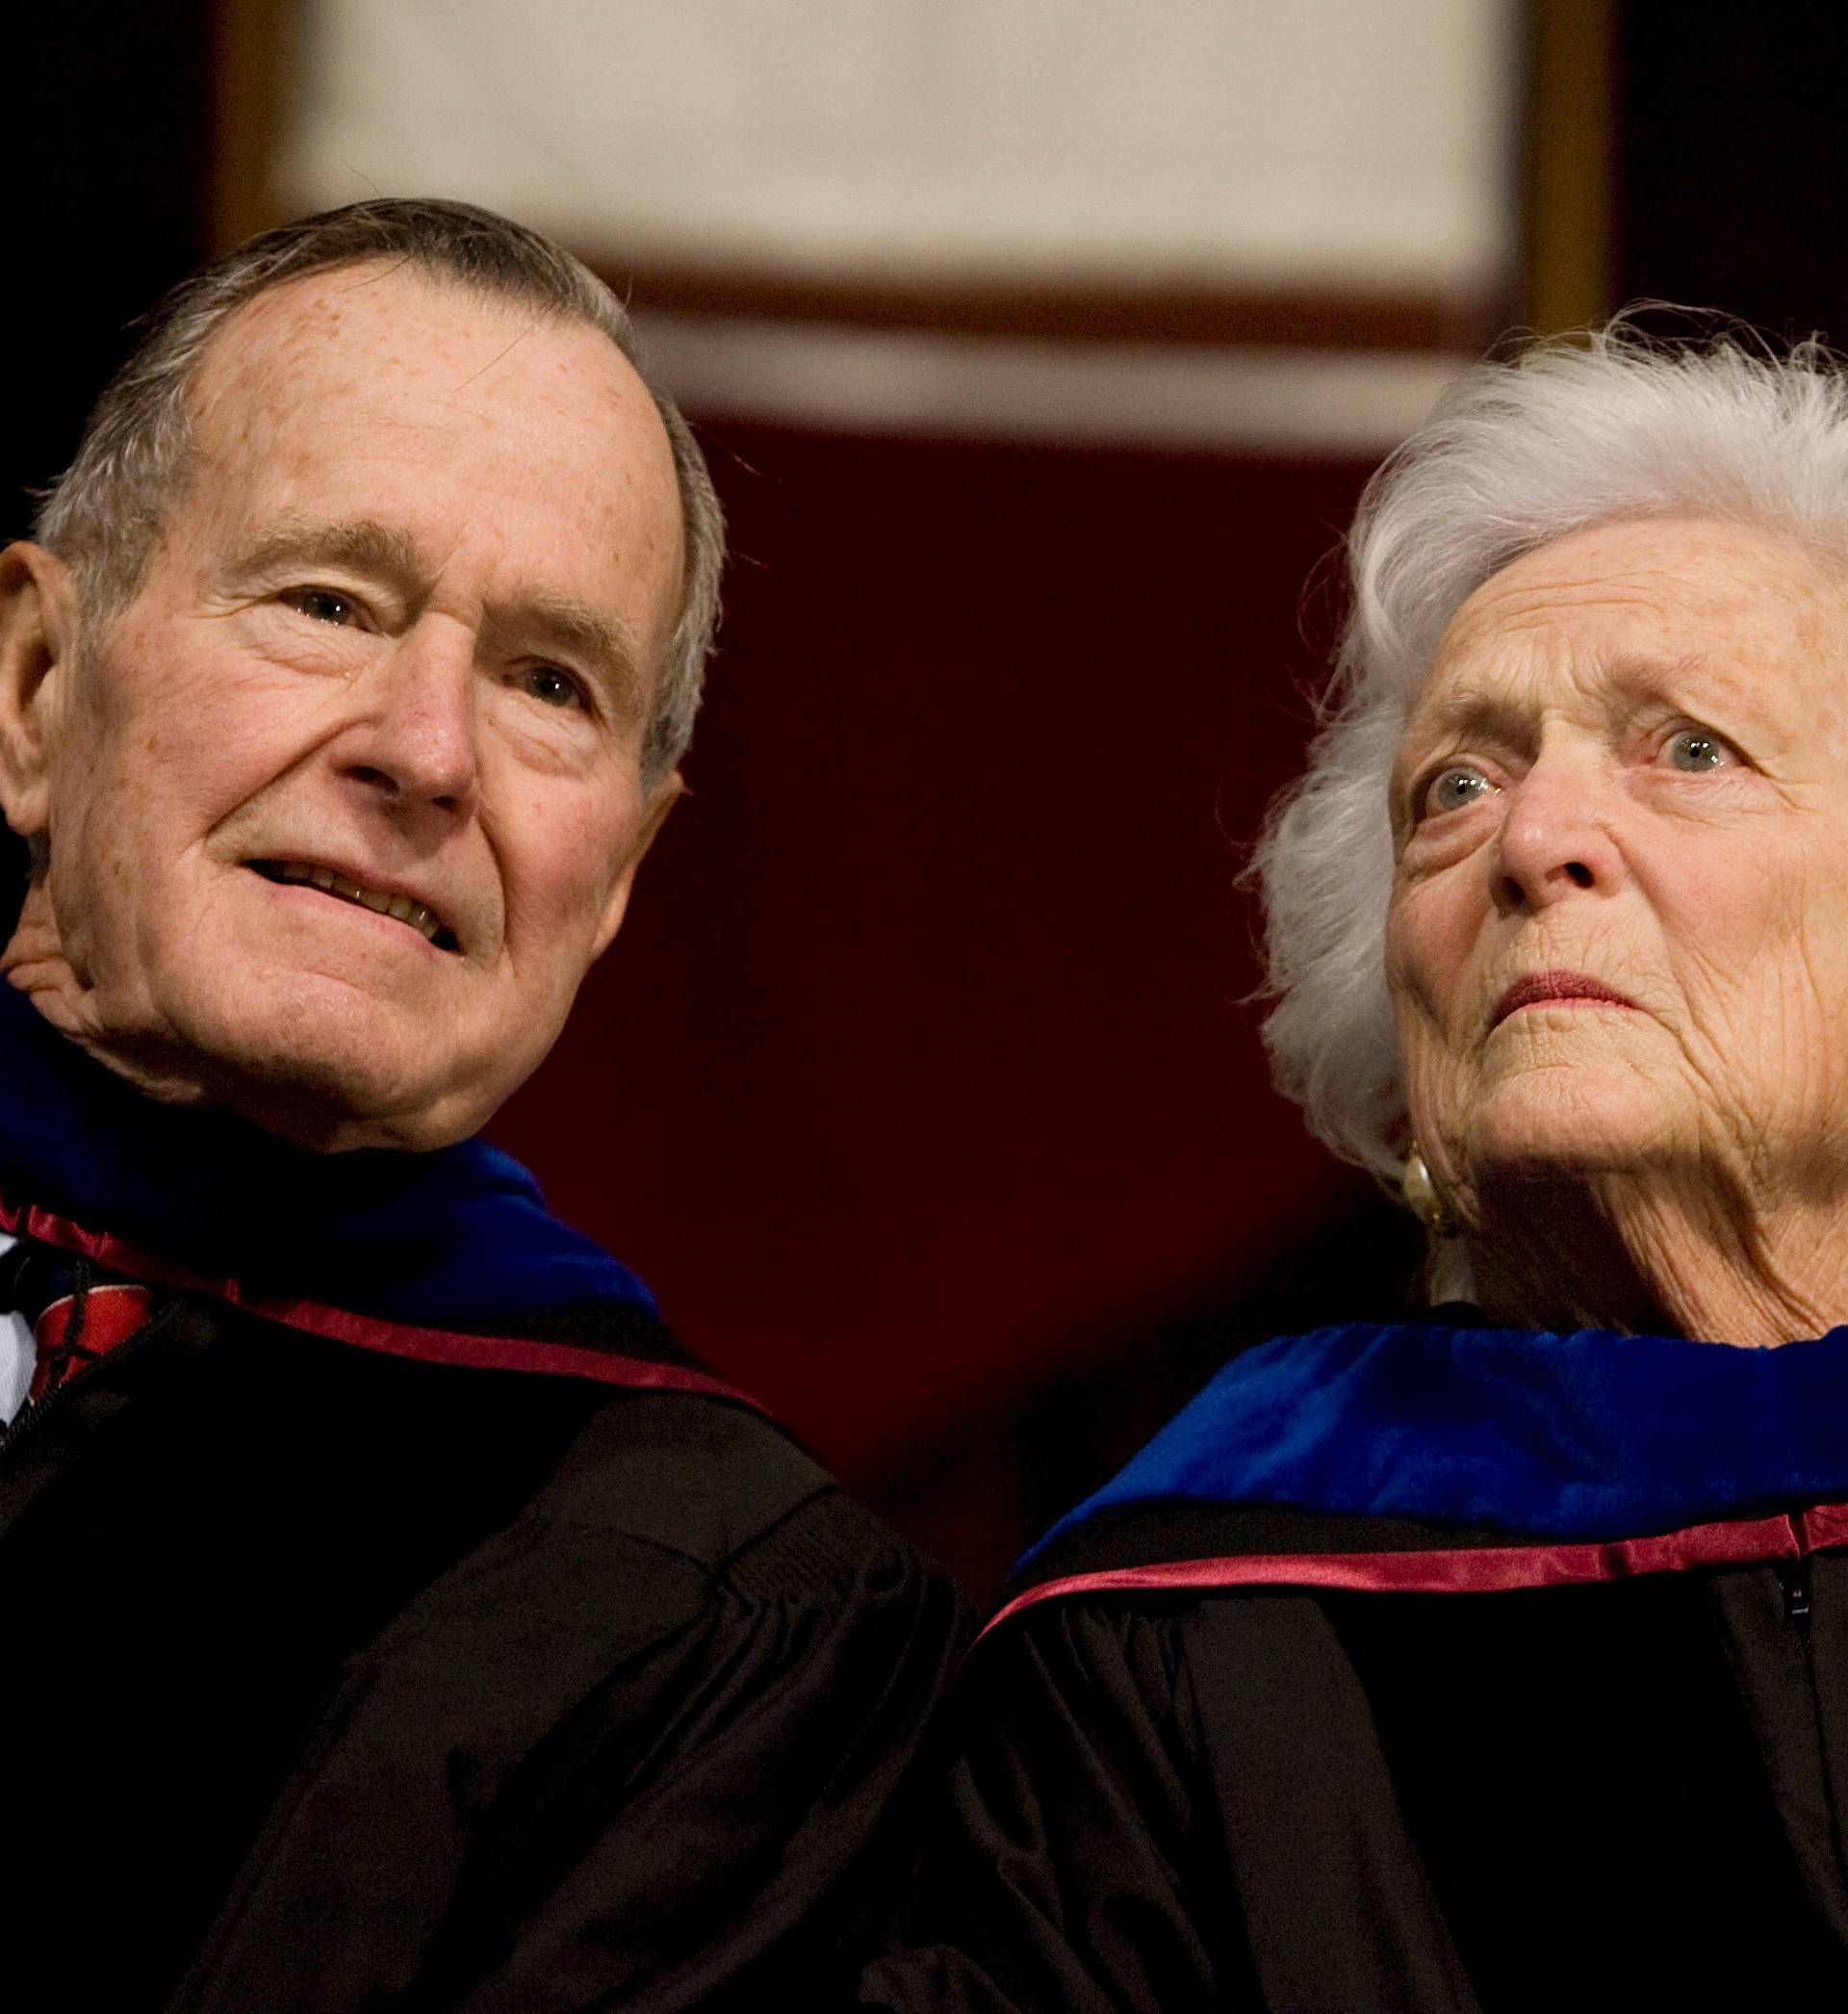 FILE PHOTO - Former President George H.W. Bush, and former first lady, Barbara Bush, attend the Texas A&M University commencement ceremony in College Station